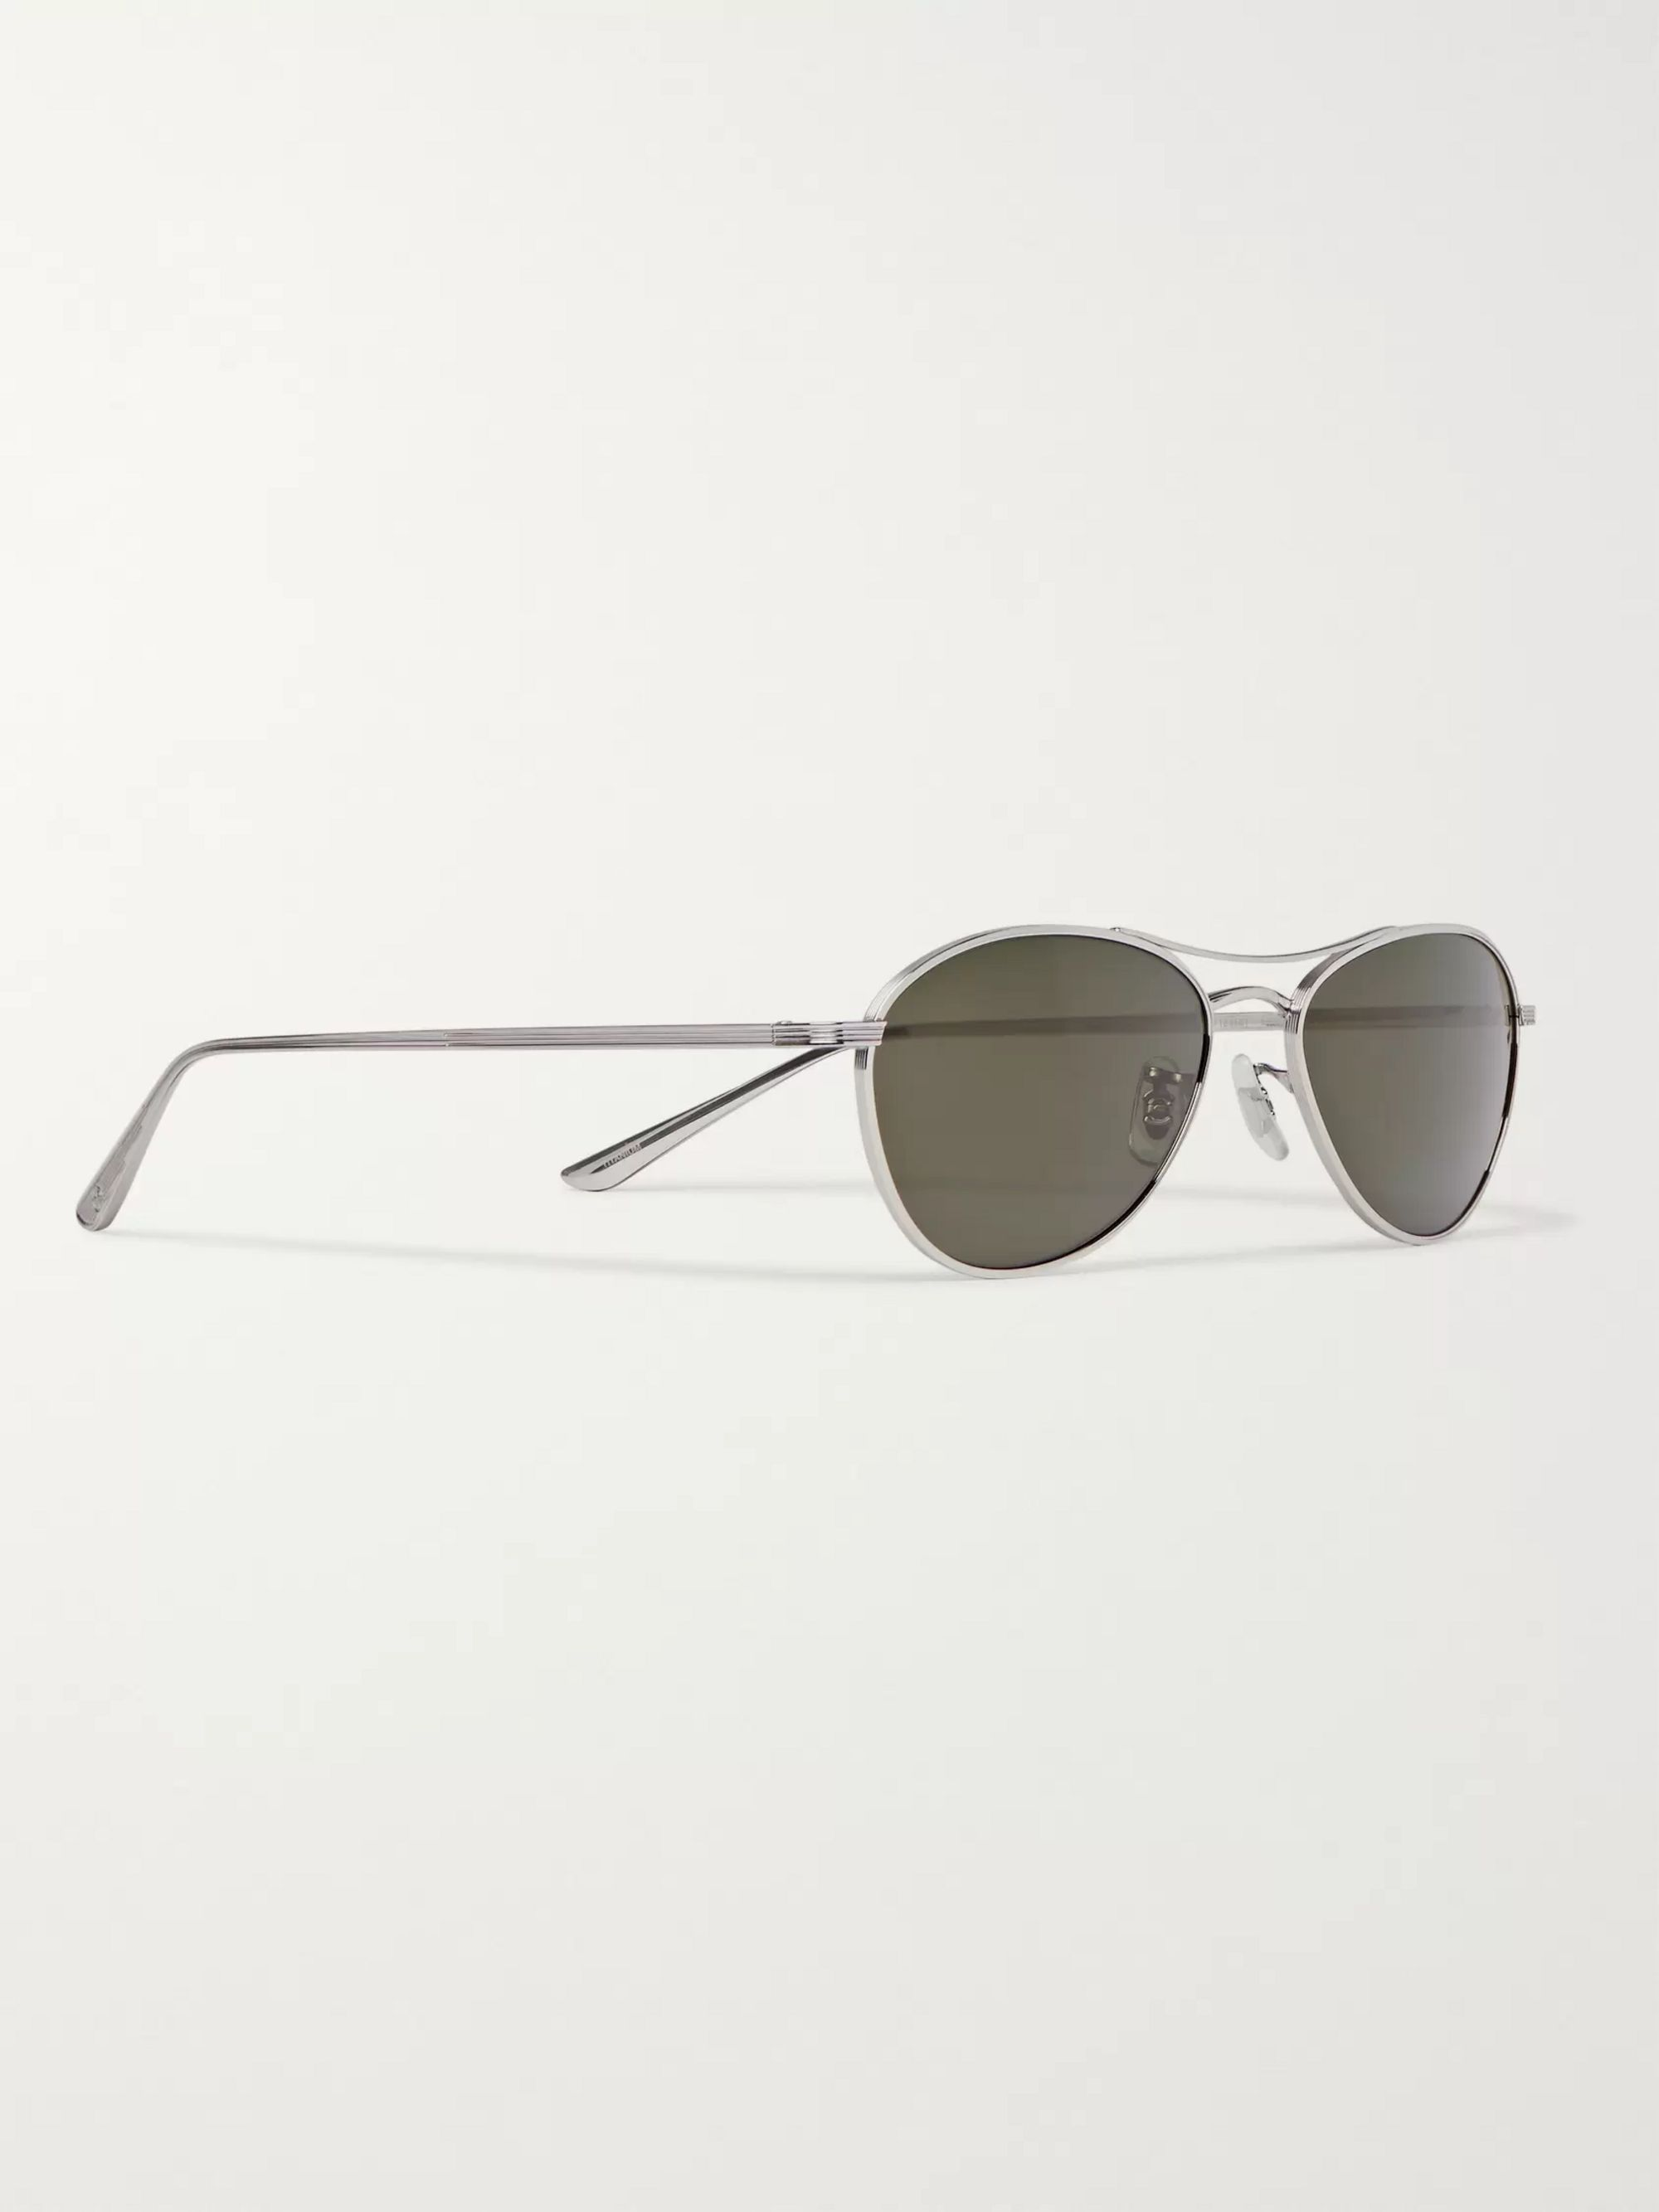 The Row + Oliver Peoples Aero LA Square-Frame Silver-Tone Titanium Sunglasses